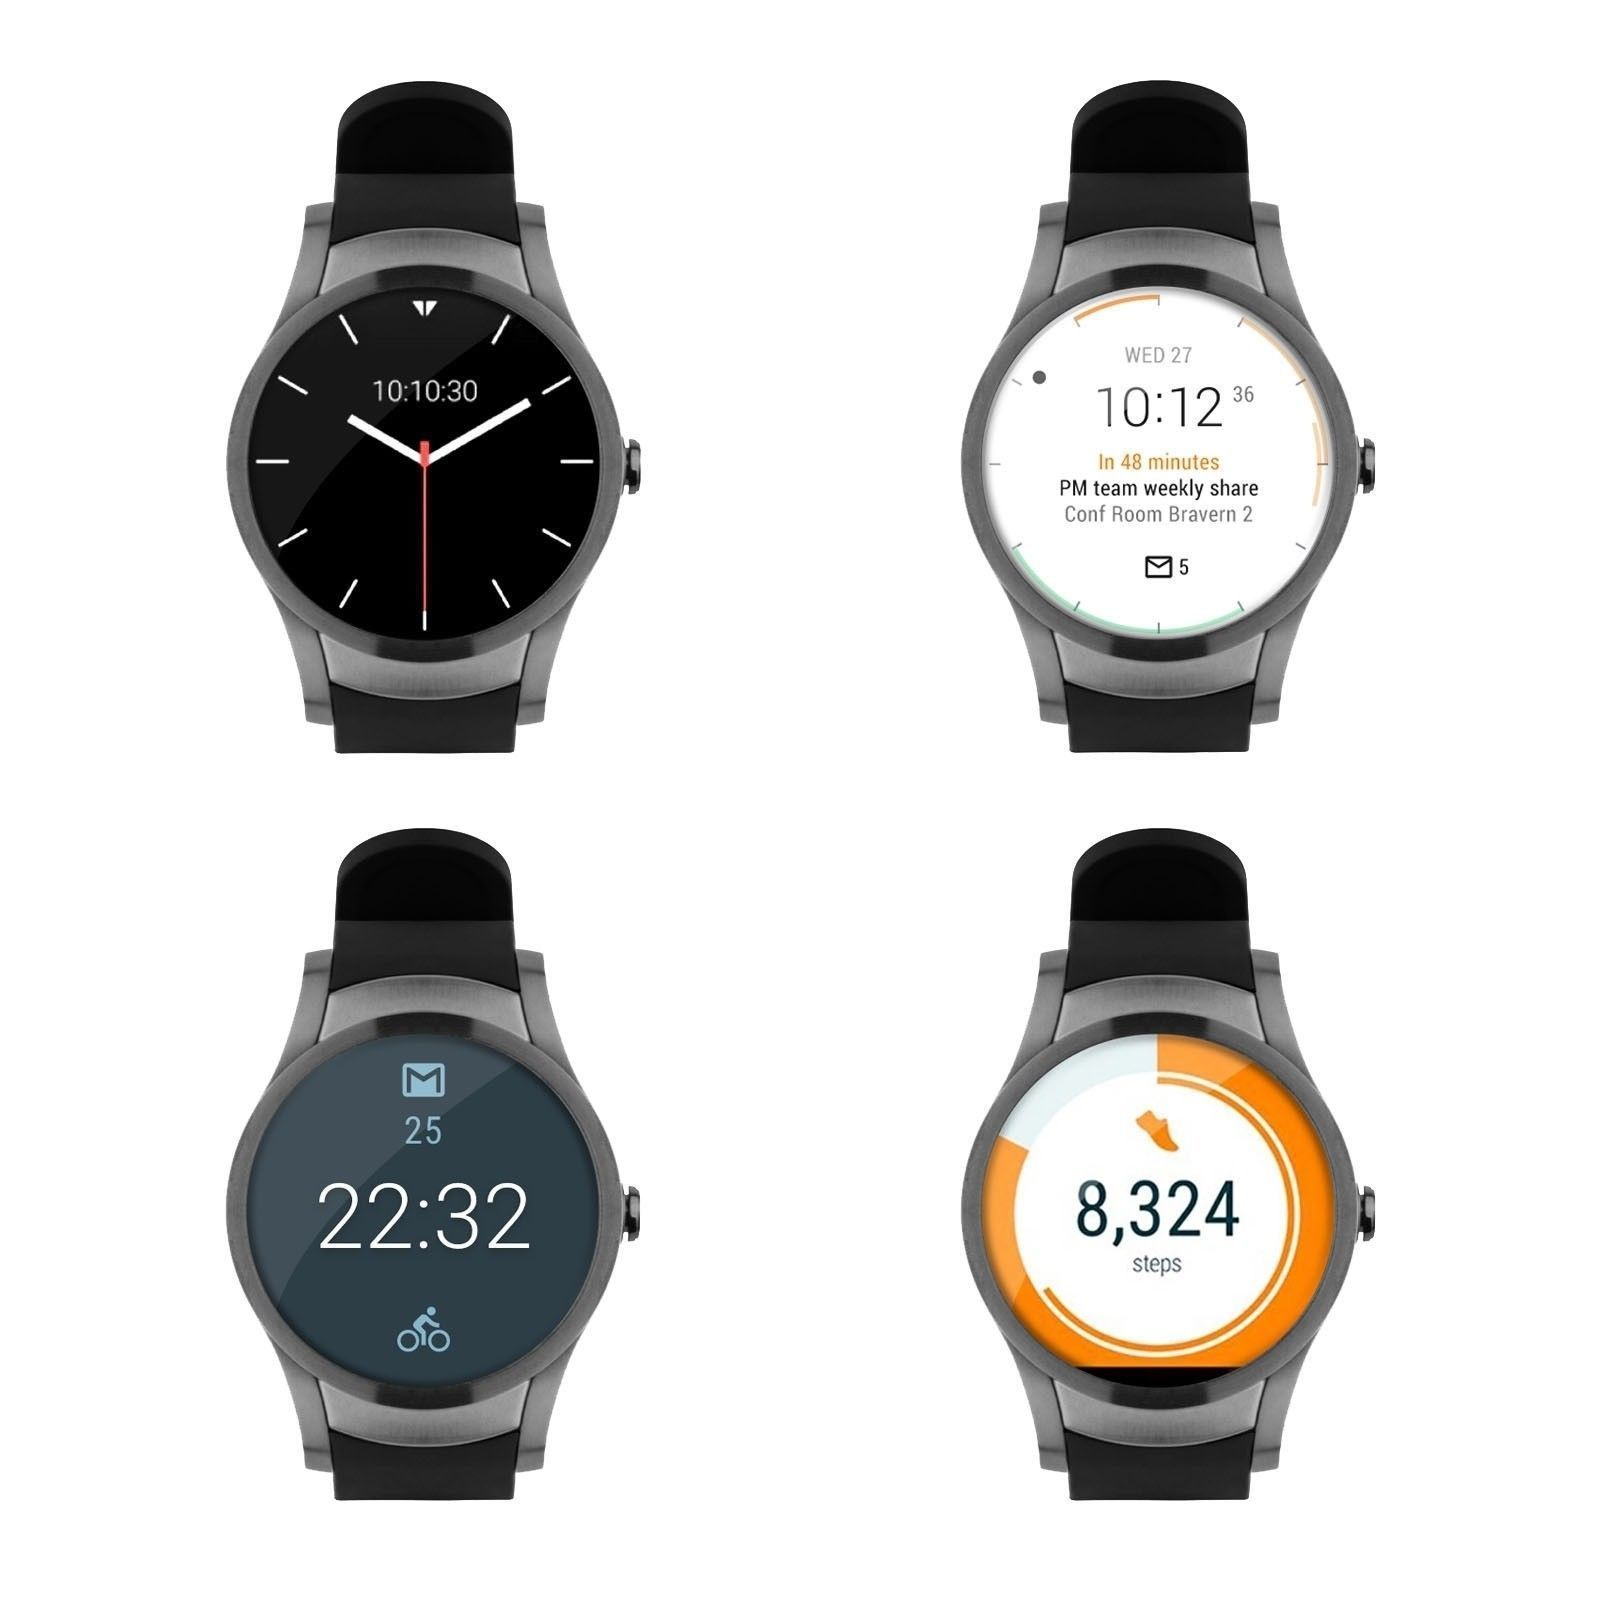 Wear24 Quanta Smartwatch by Verizon Smart watch, Android